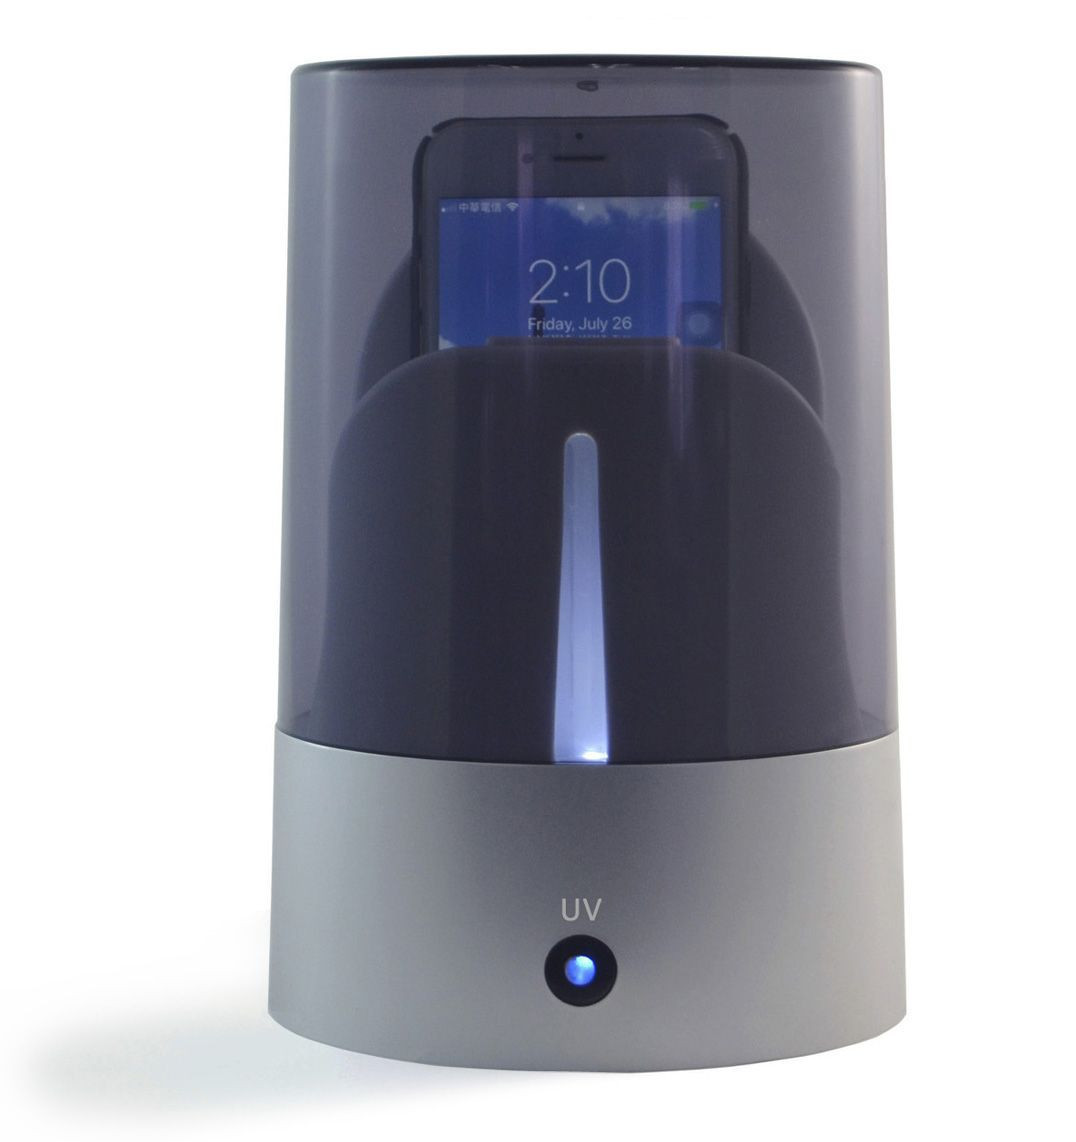 UV Spa Cell Phone Sterilizer with Wireless Charger UV-W1586